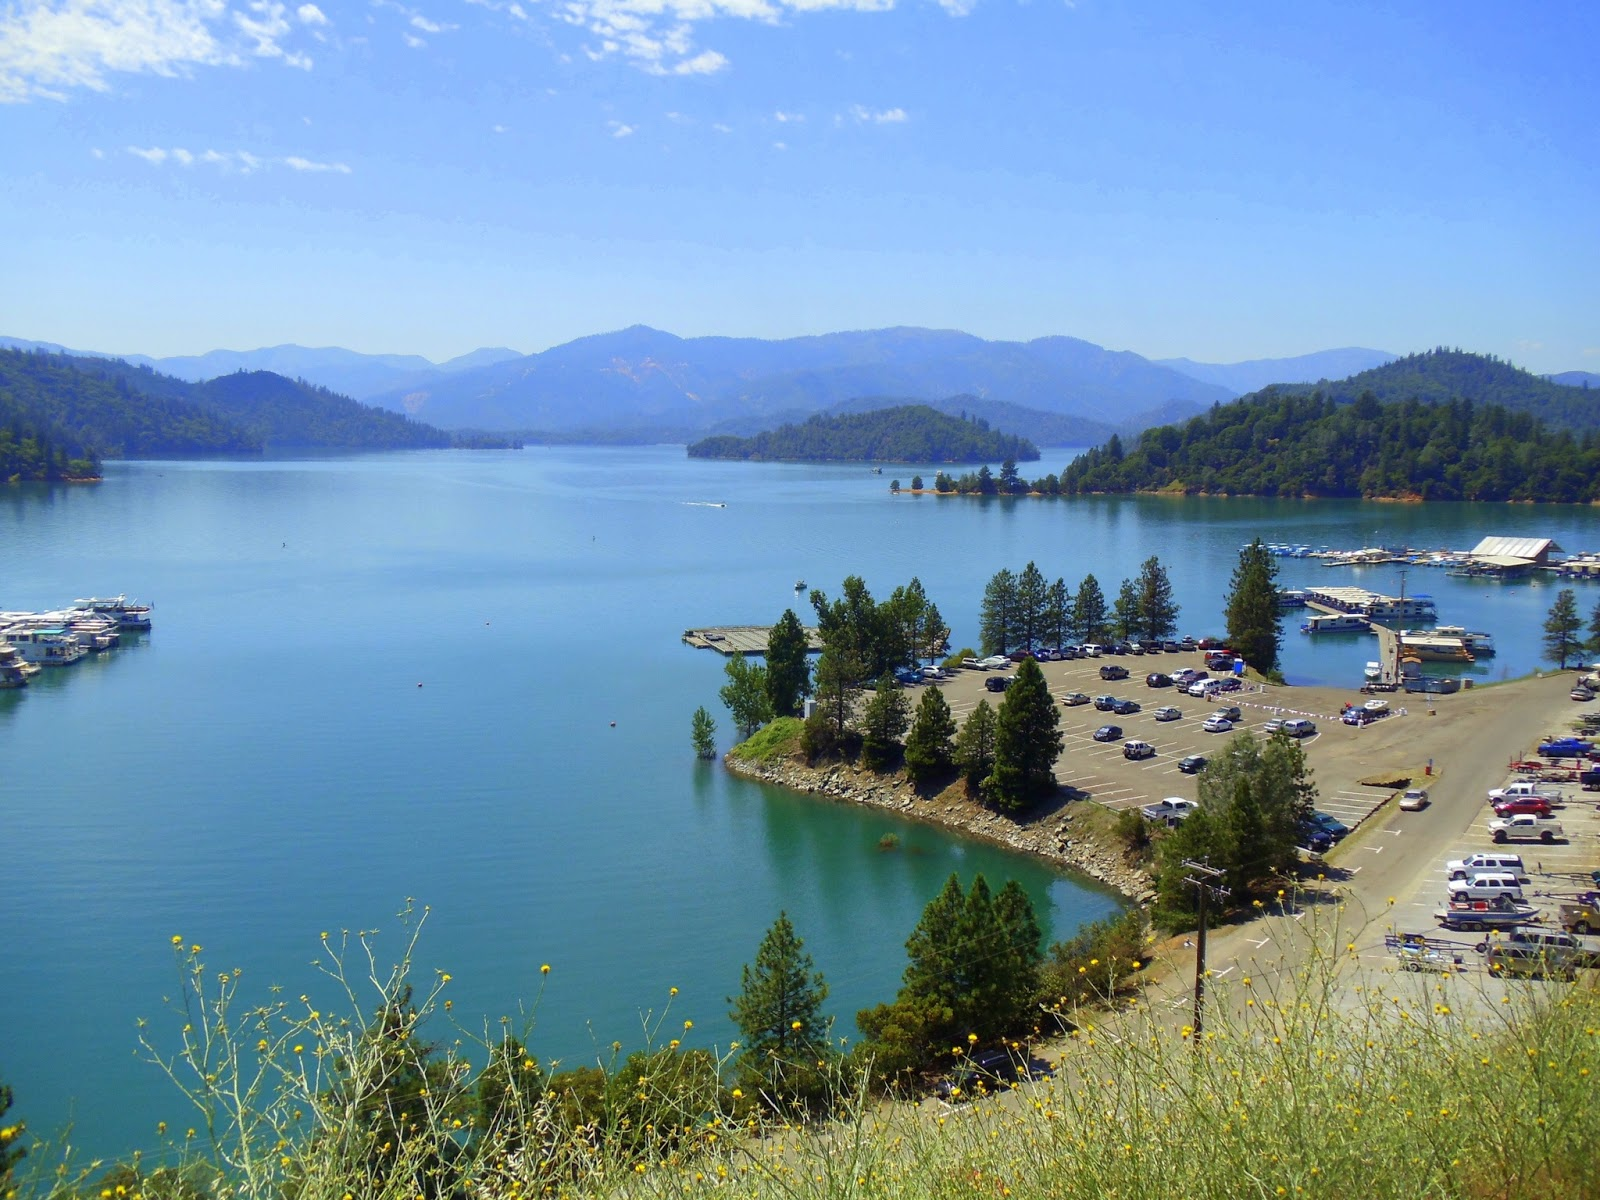 Vacation Home Rentals in Shasta Lake